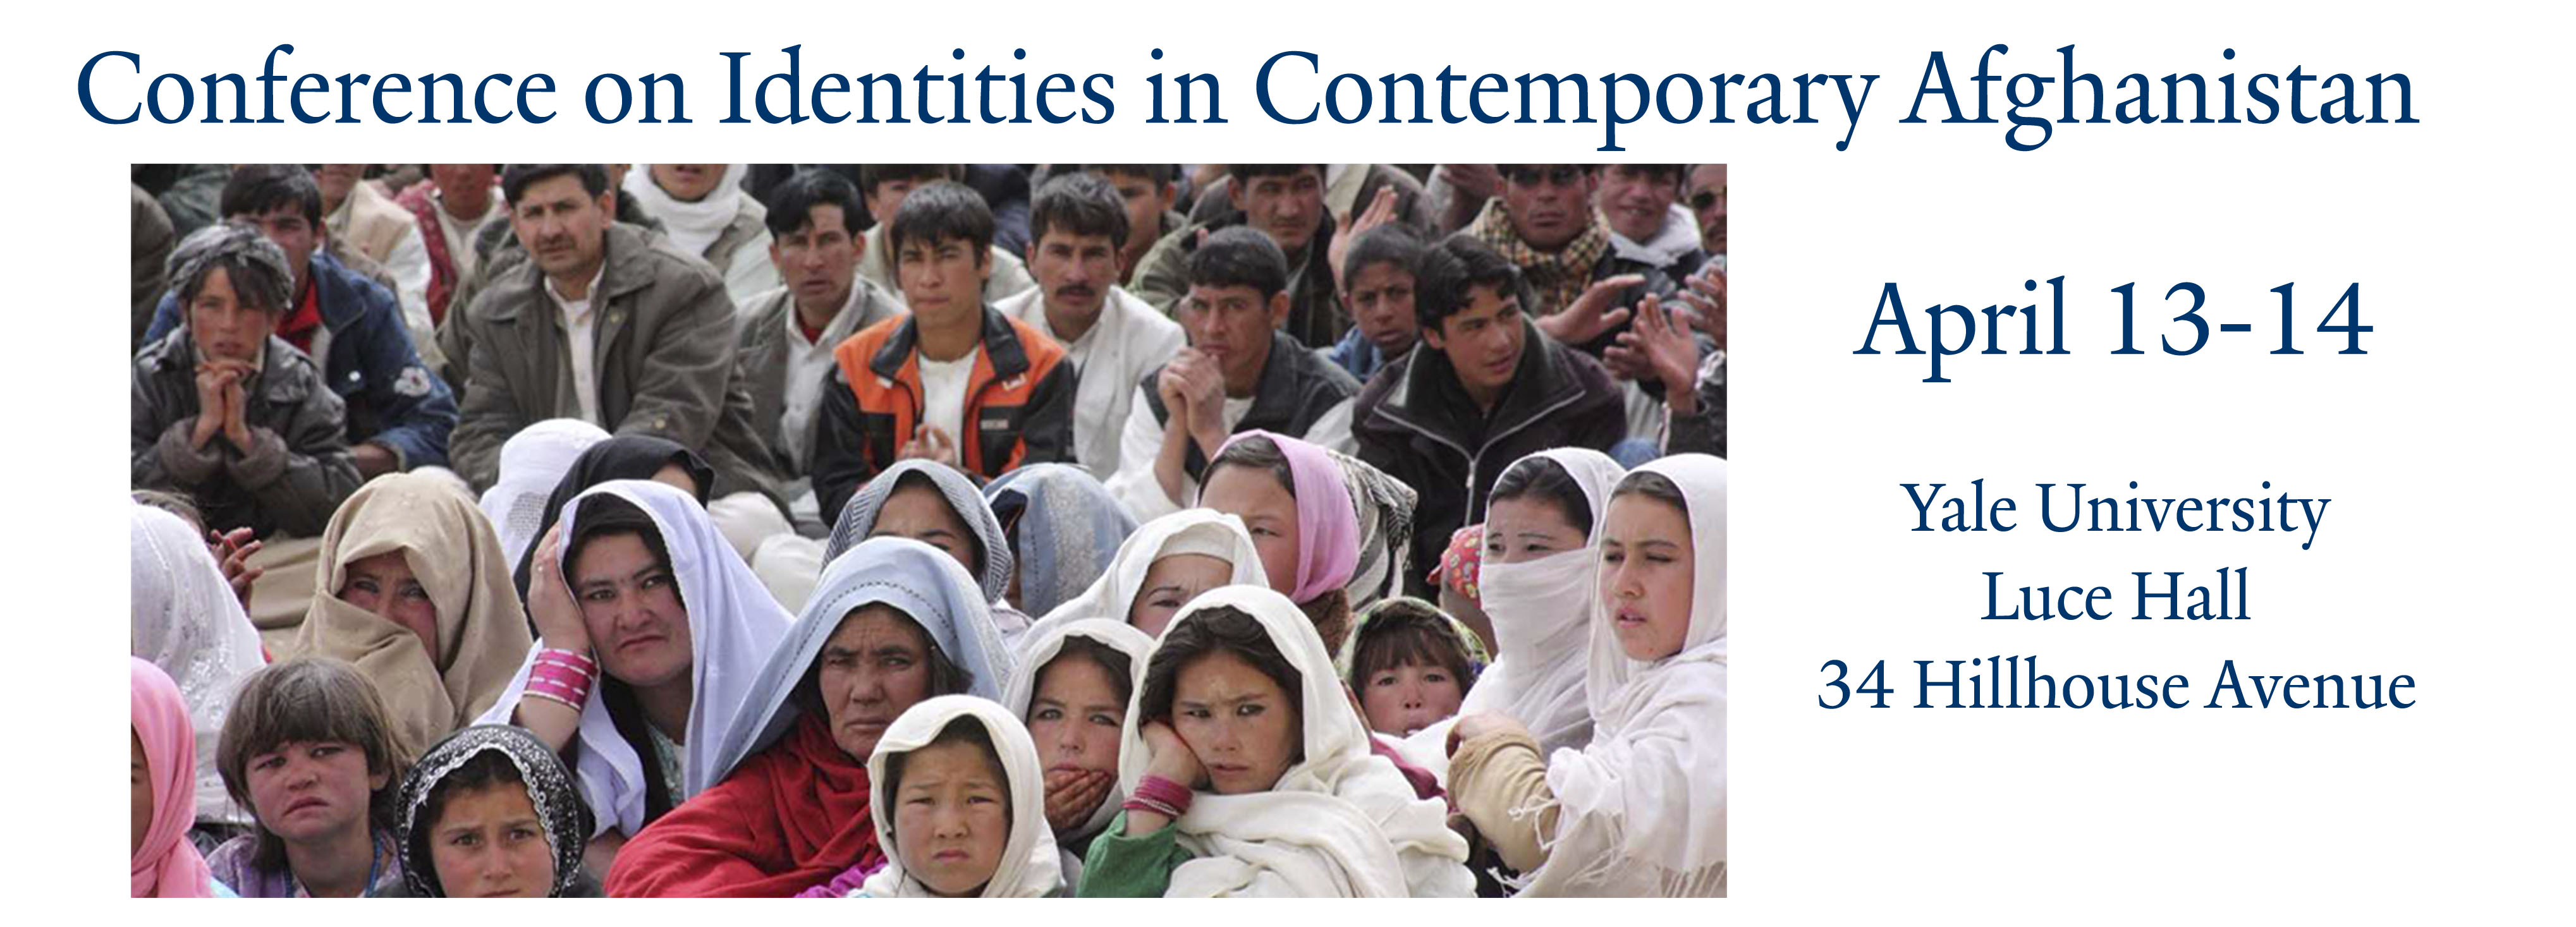 Conference on Identities in Contemporary Afghanistan April 13-14, Yale University Luce Hall